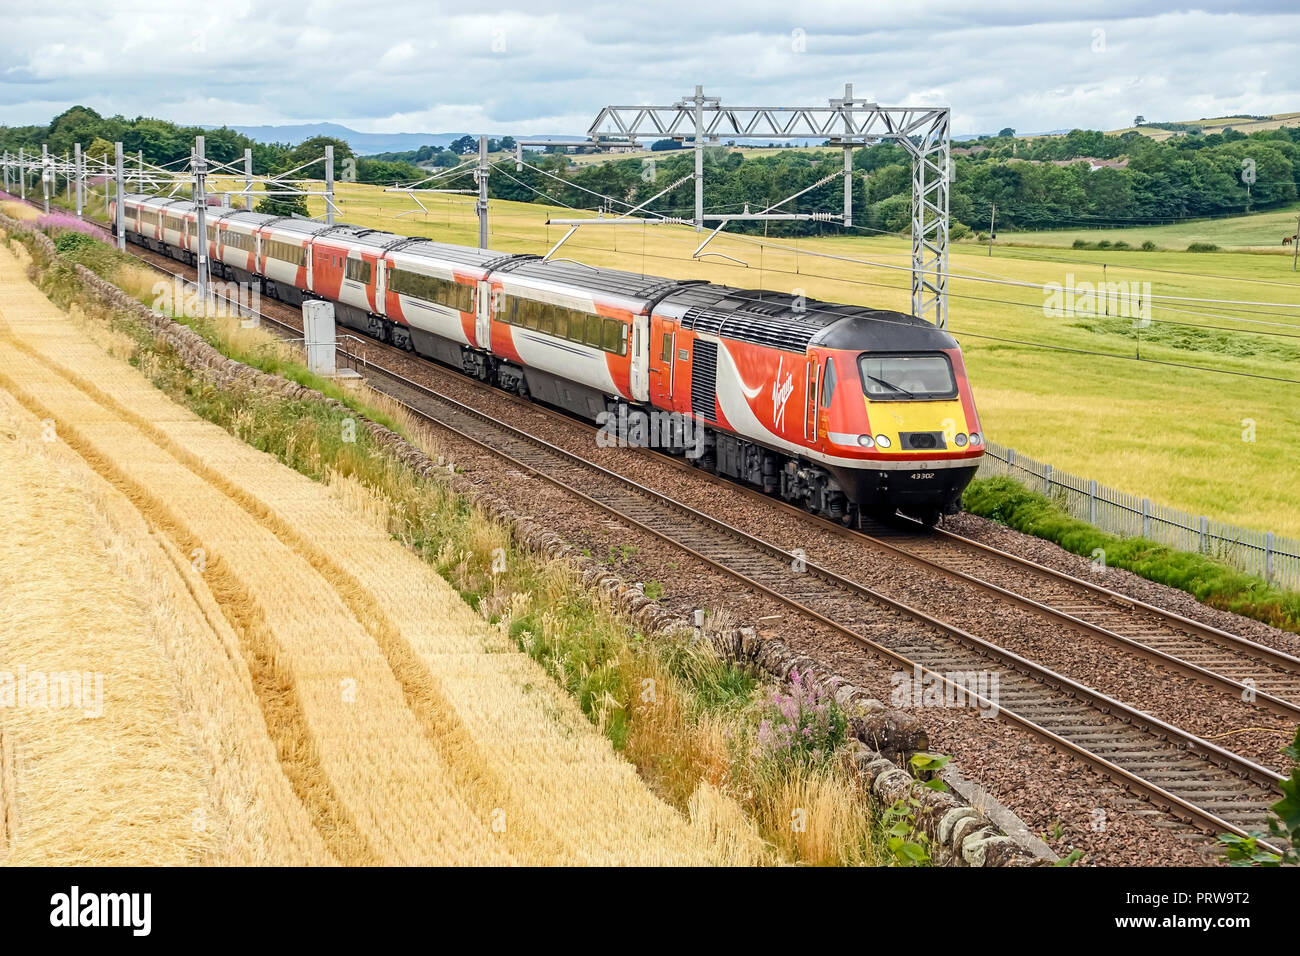 LNER high speed train still in Virgin colours at Park Farm near Linlithgow West Lothian Scotland UK travelling from Inverness to London via Edinburgh - Stock Image